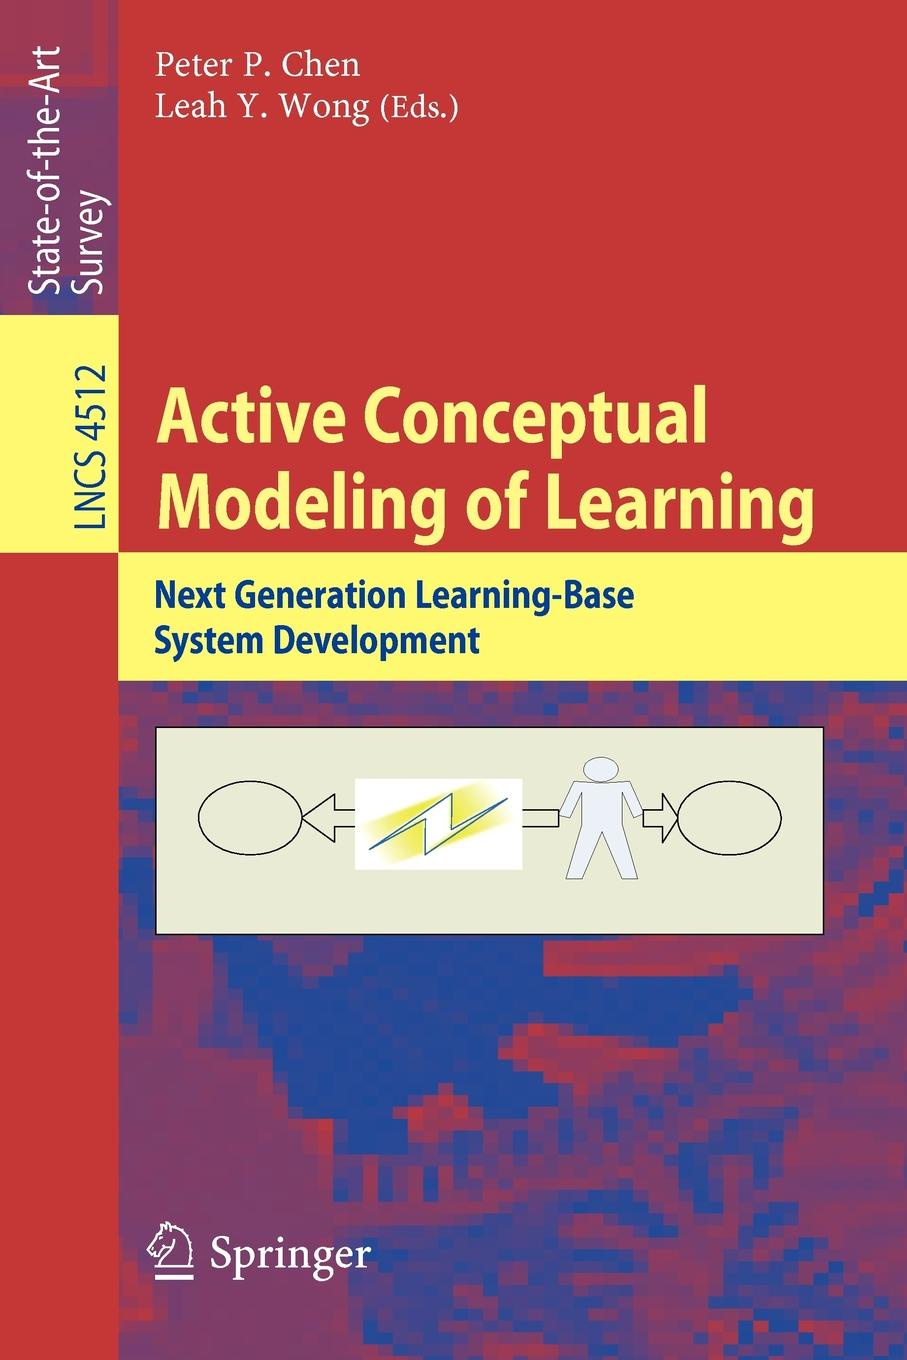 Active Conceptual Modeling of Learning. Next Generation Learning-Base System Development